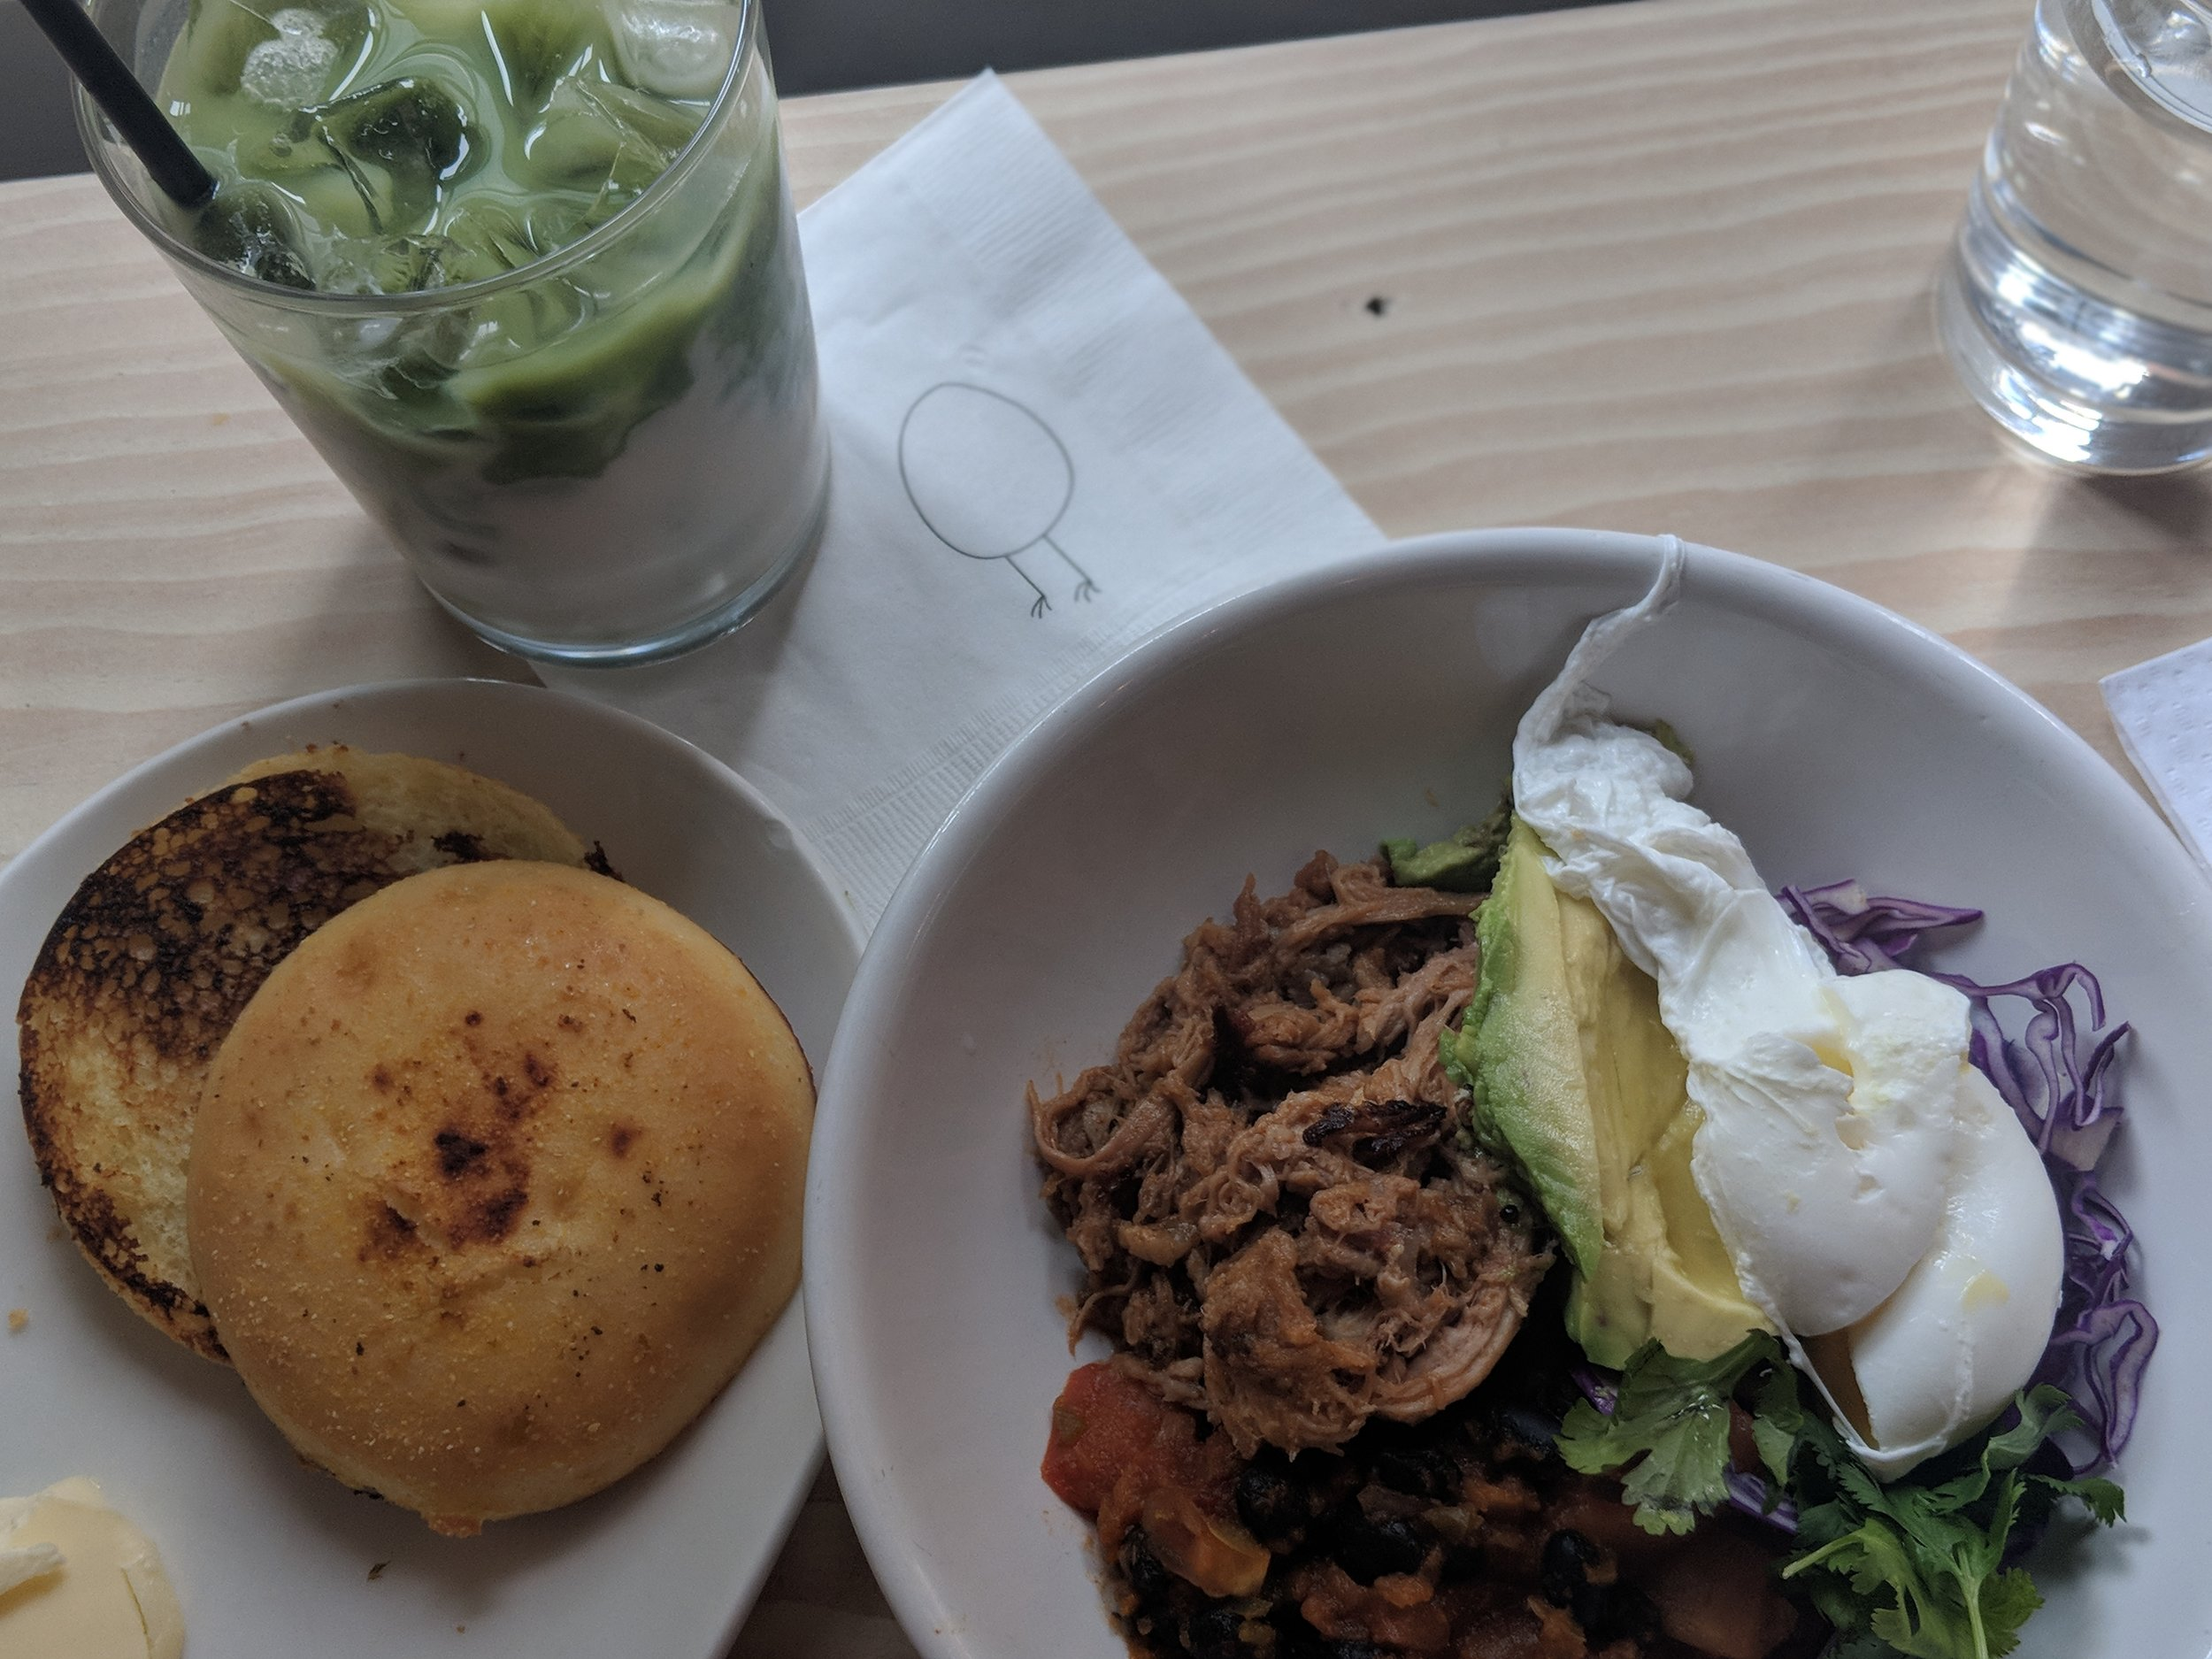 'El Camino' Poached egg, avocado, pulled pork carnitas, tomato, fried tortilla (subbed for muffin) at Egg Shop.